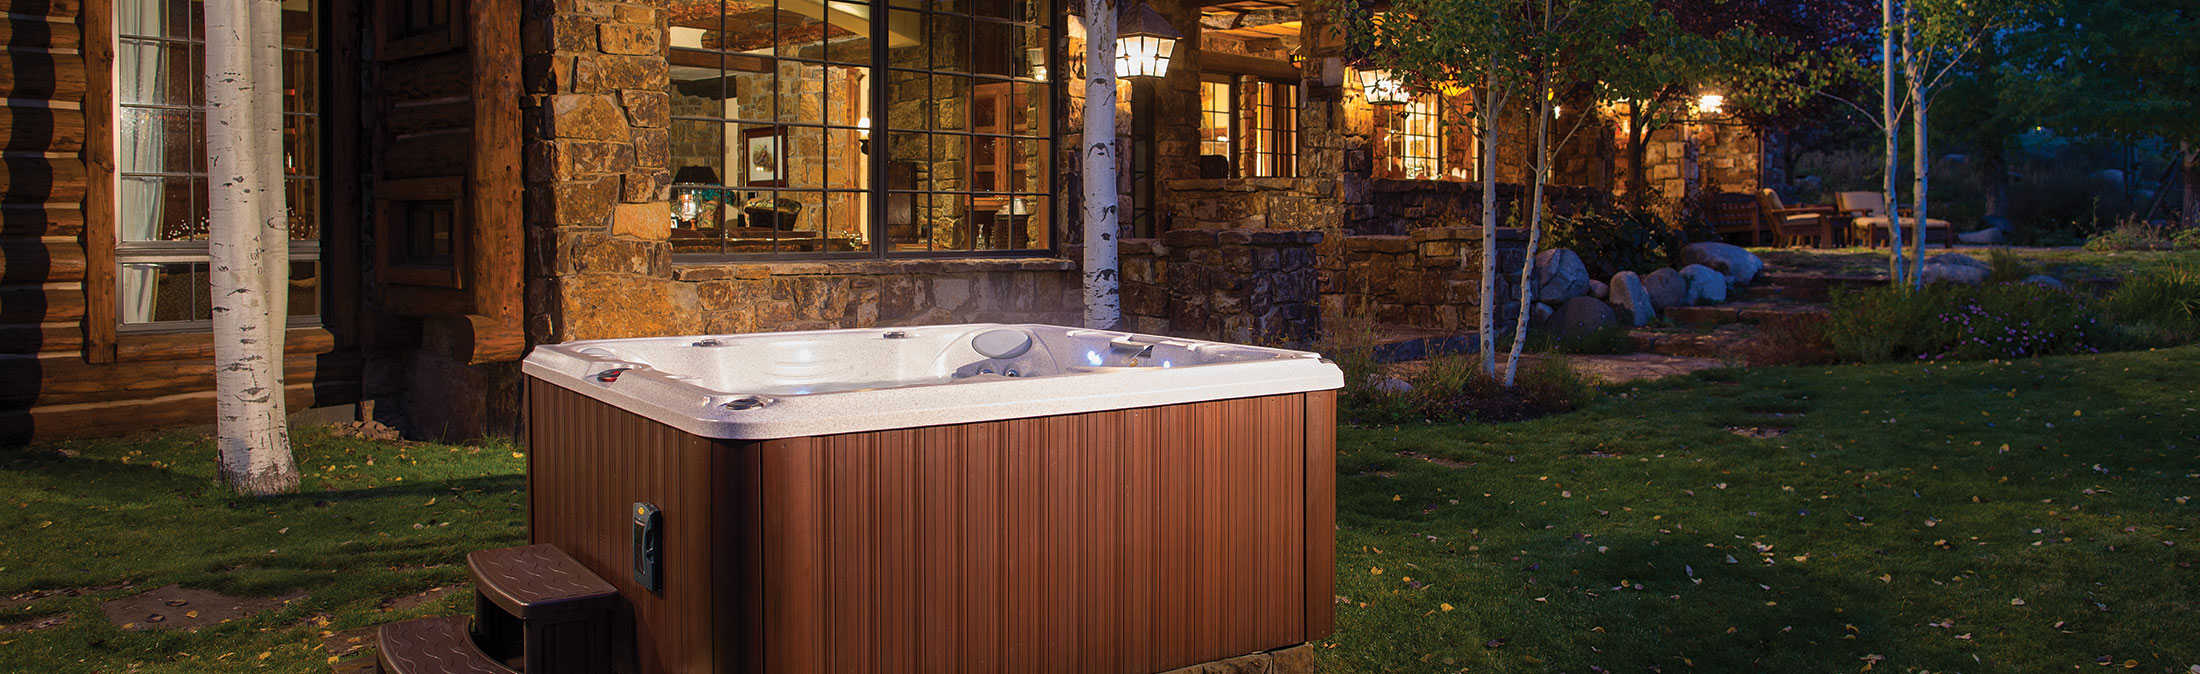 Paradise Pool and Spa J200 Collection